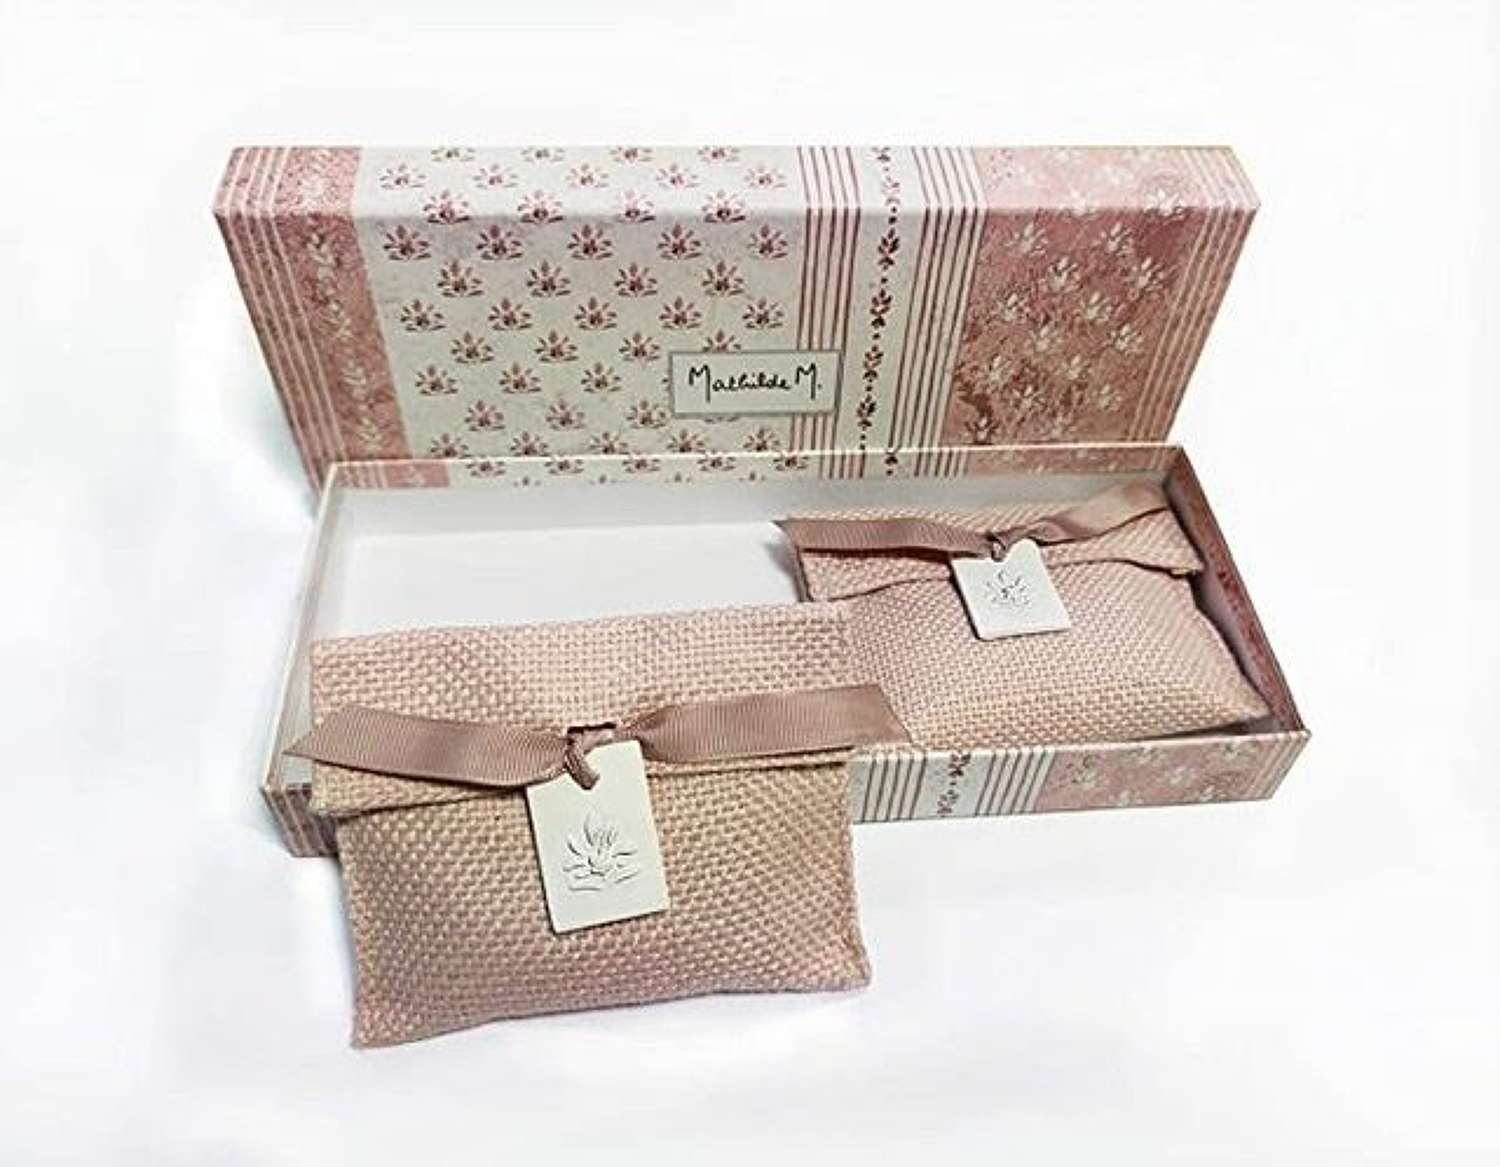 Mathilde M. France - Gift Set of 2 Marquise Scented Pouches